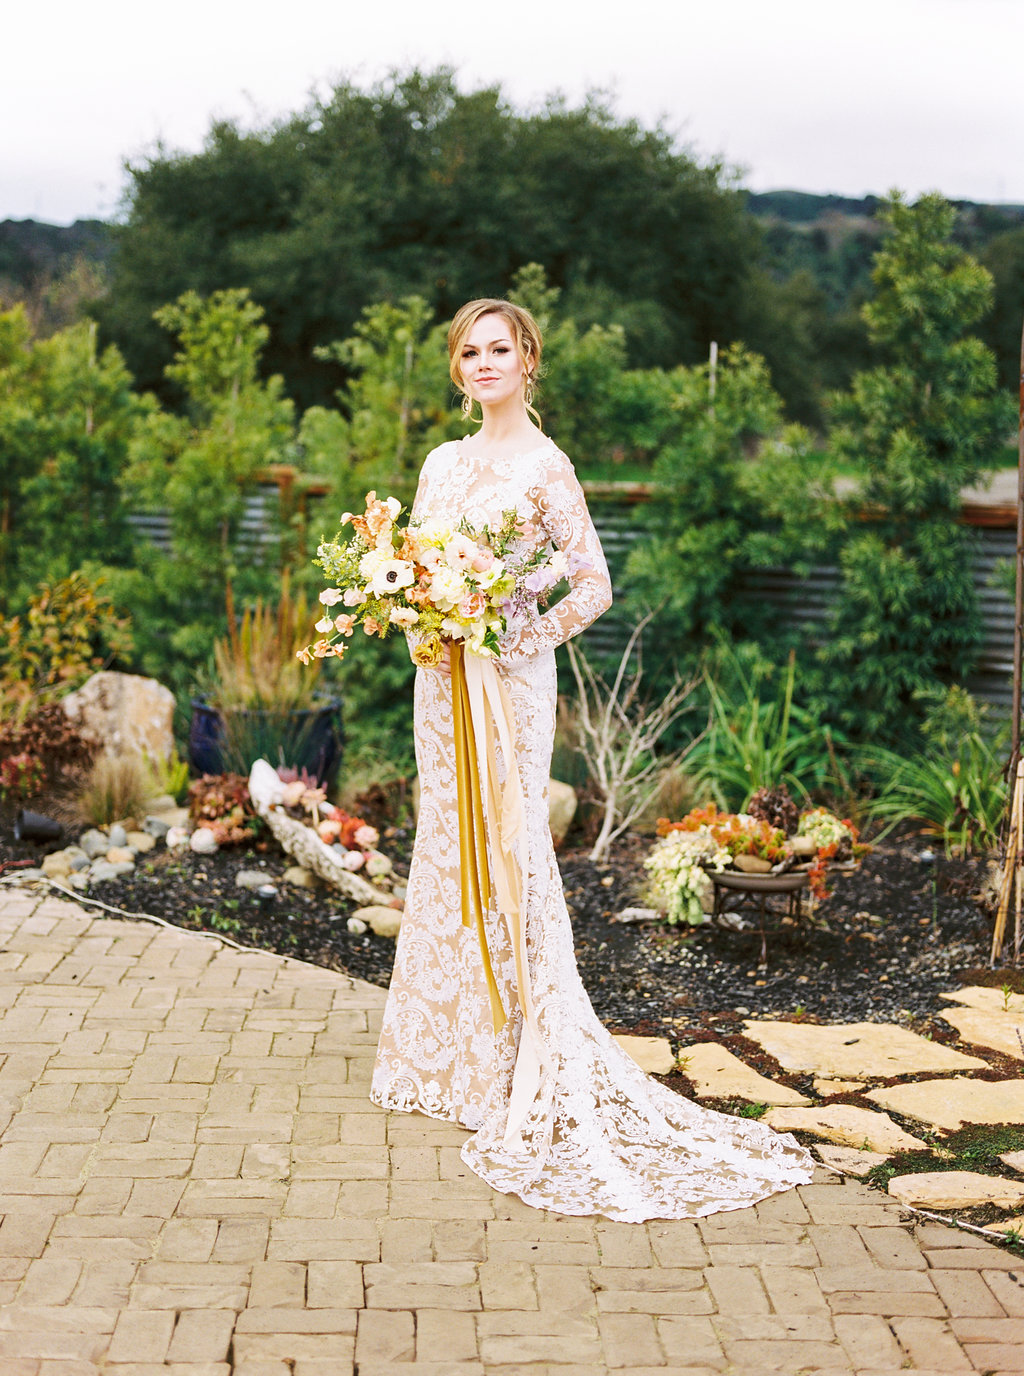 Gorgeous Royal Wedding Style Lace Wedding Gown with Mustard and Nude Silk Ribbon Bouquet